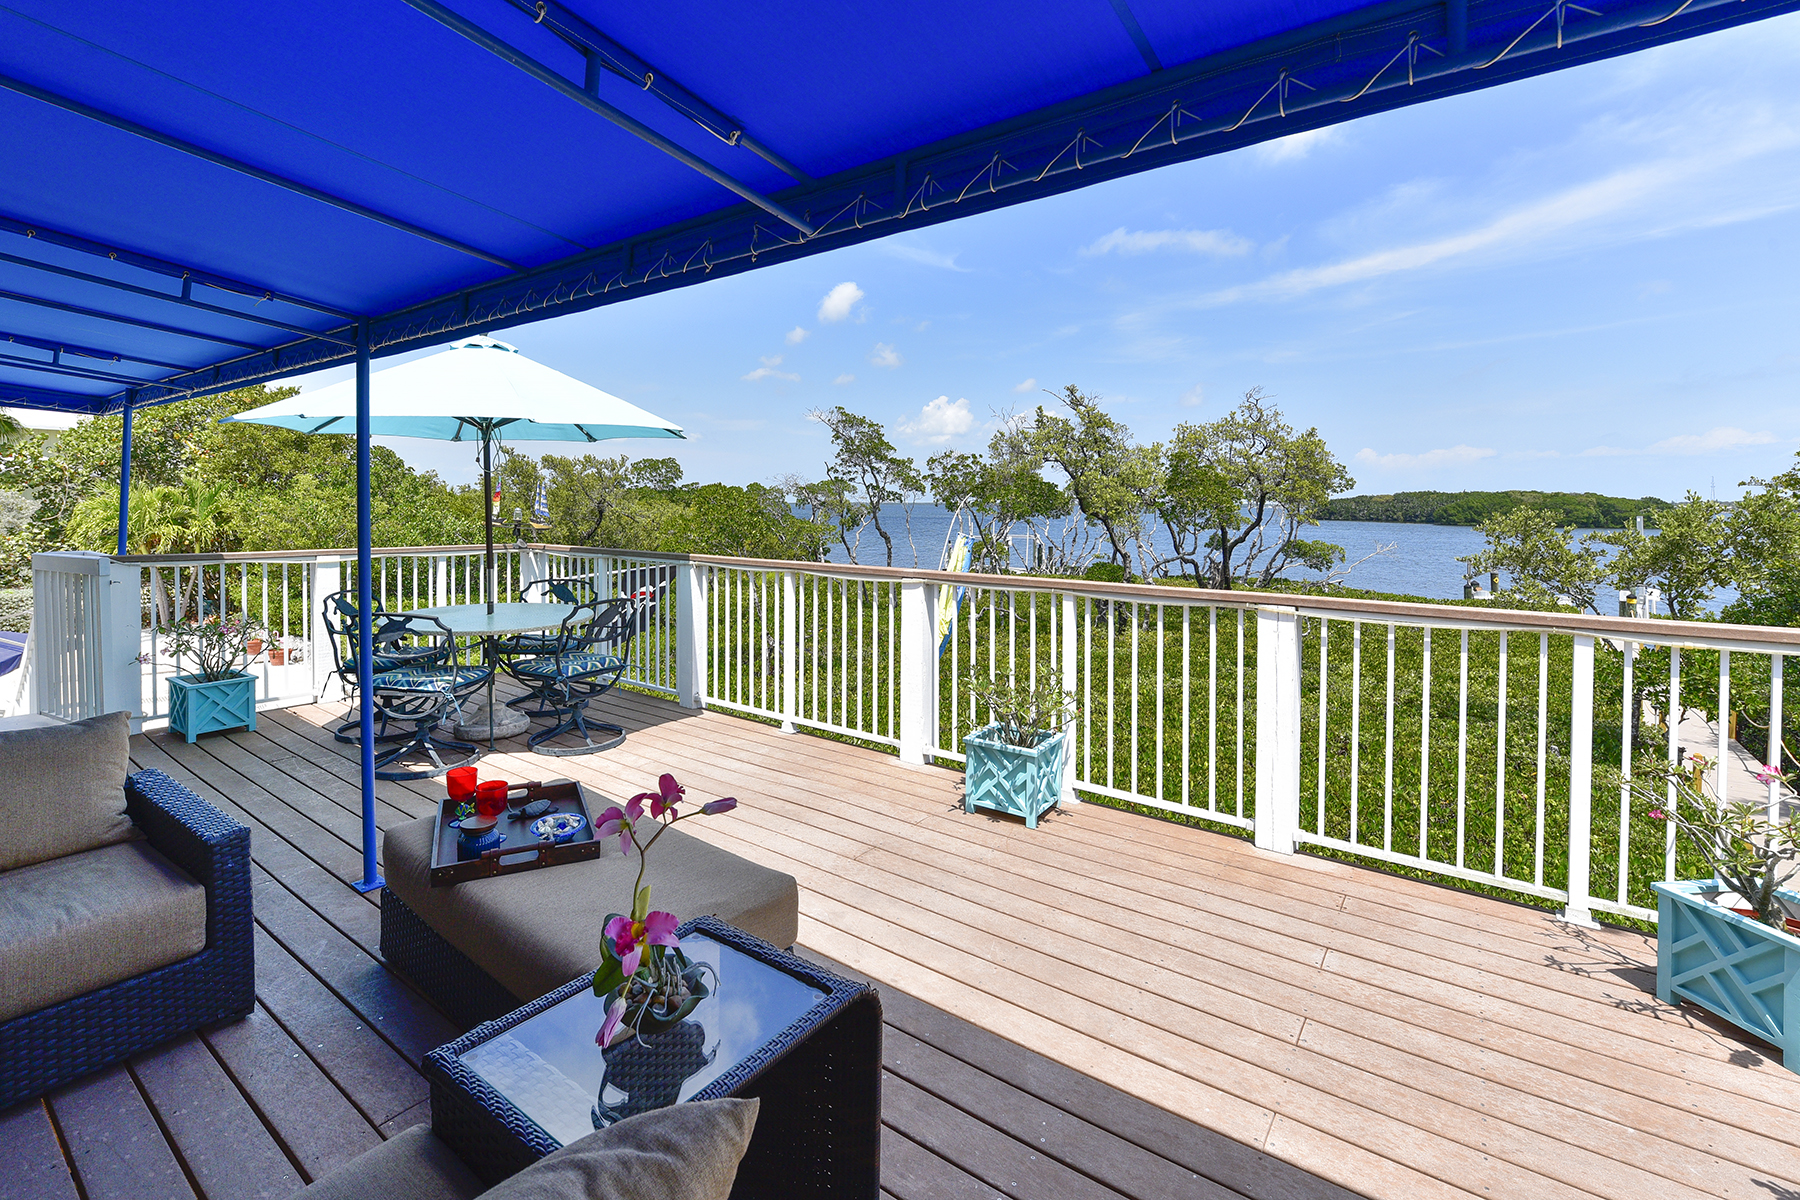 Additional photo for property listing at Exclusive Bayfront Home 45 Mutiny Place Key Largo, Флорида 33037 Соединенные Штаты